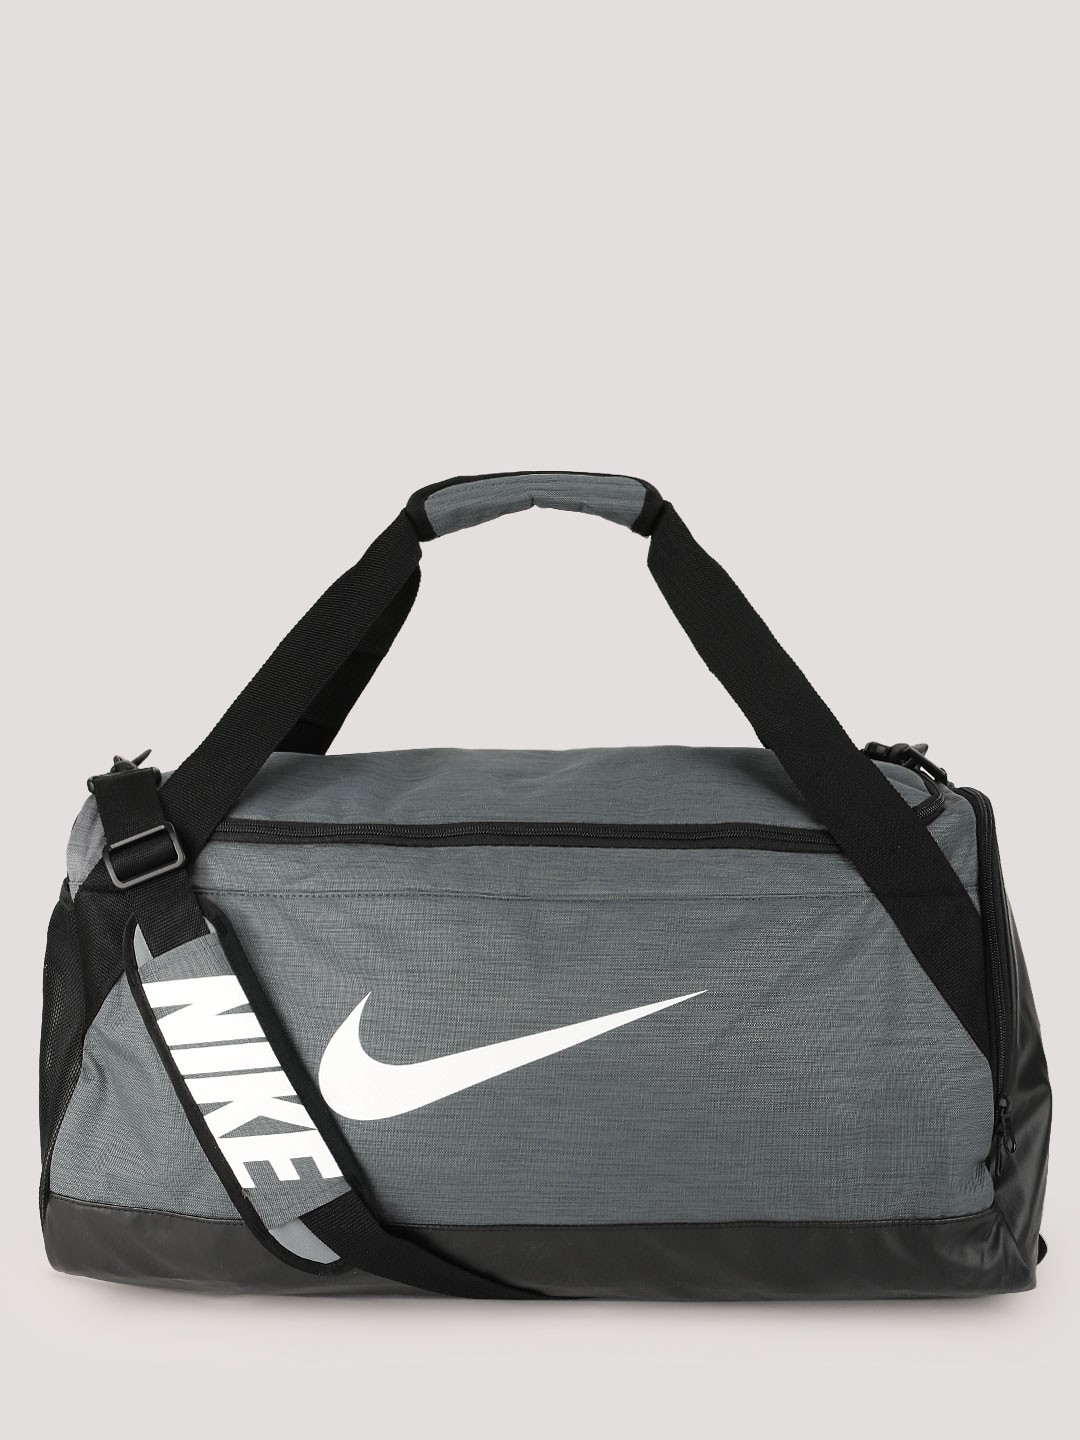 Buy NIKE Brasilia Medium Duffel Bag For Men - Men's Multi